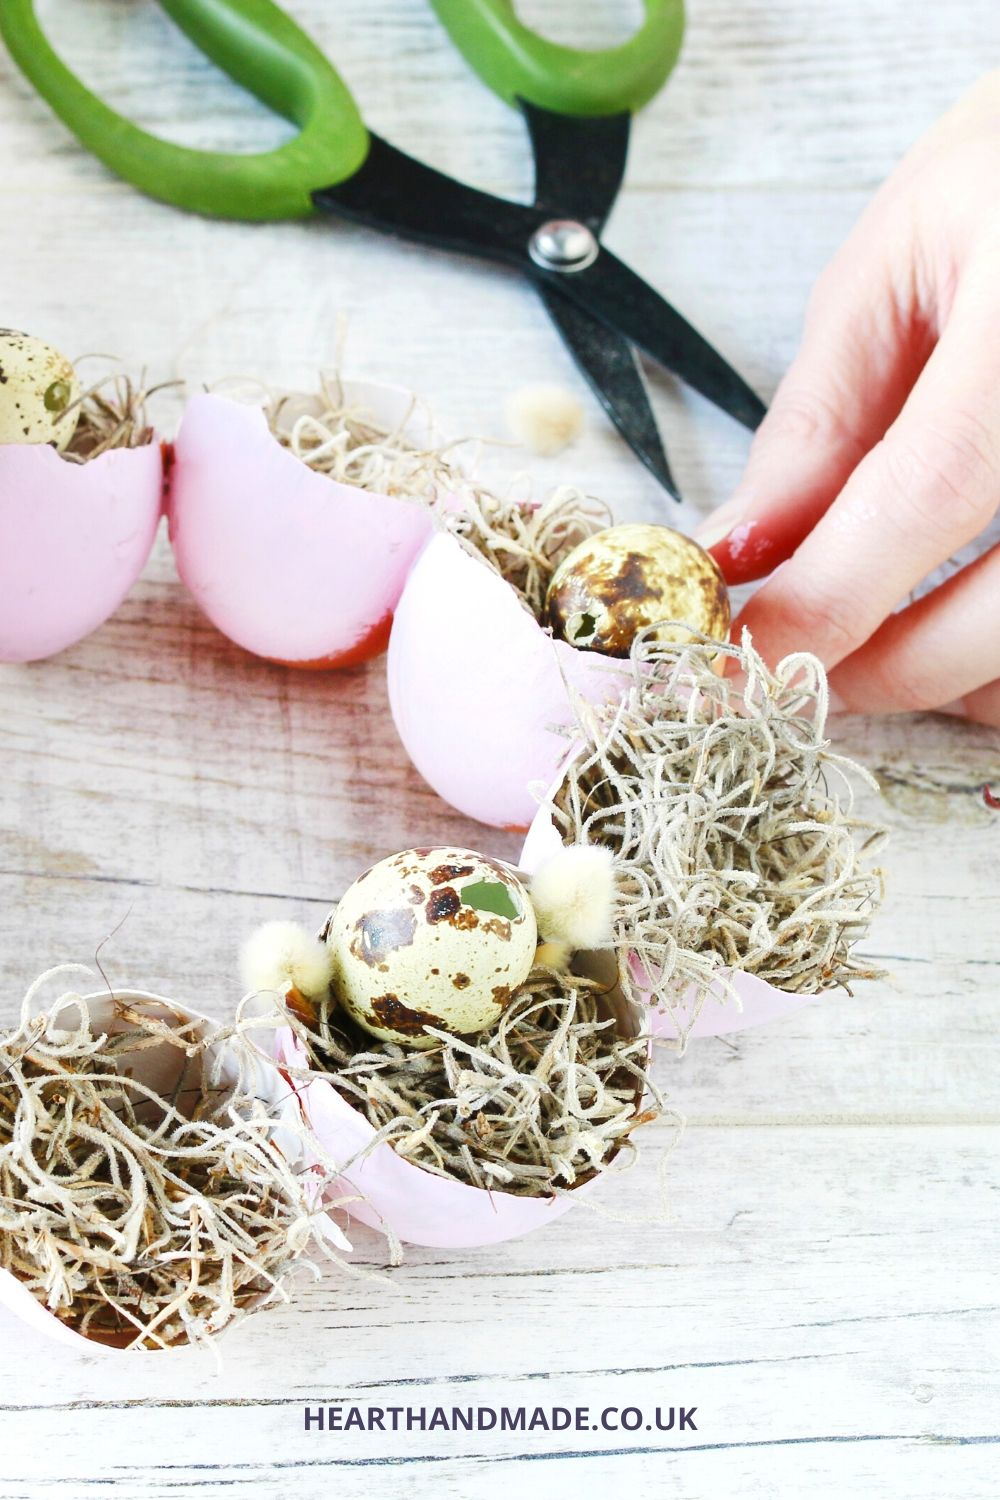 How to make an Egg vase centrepiece - fill with moss, willows and mini eggs